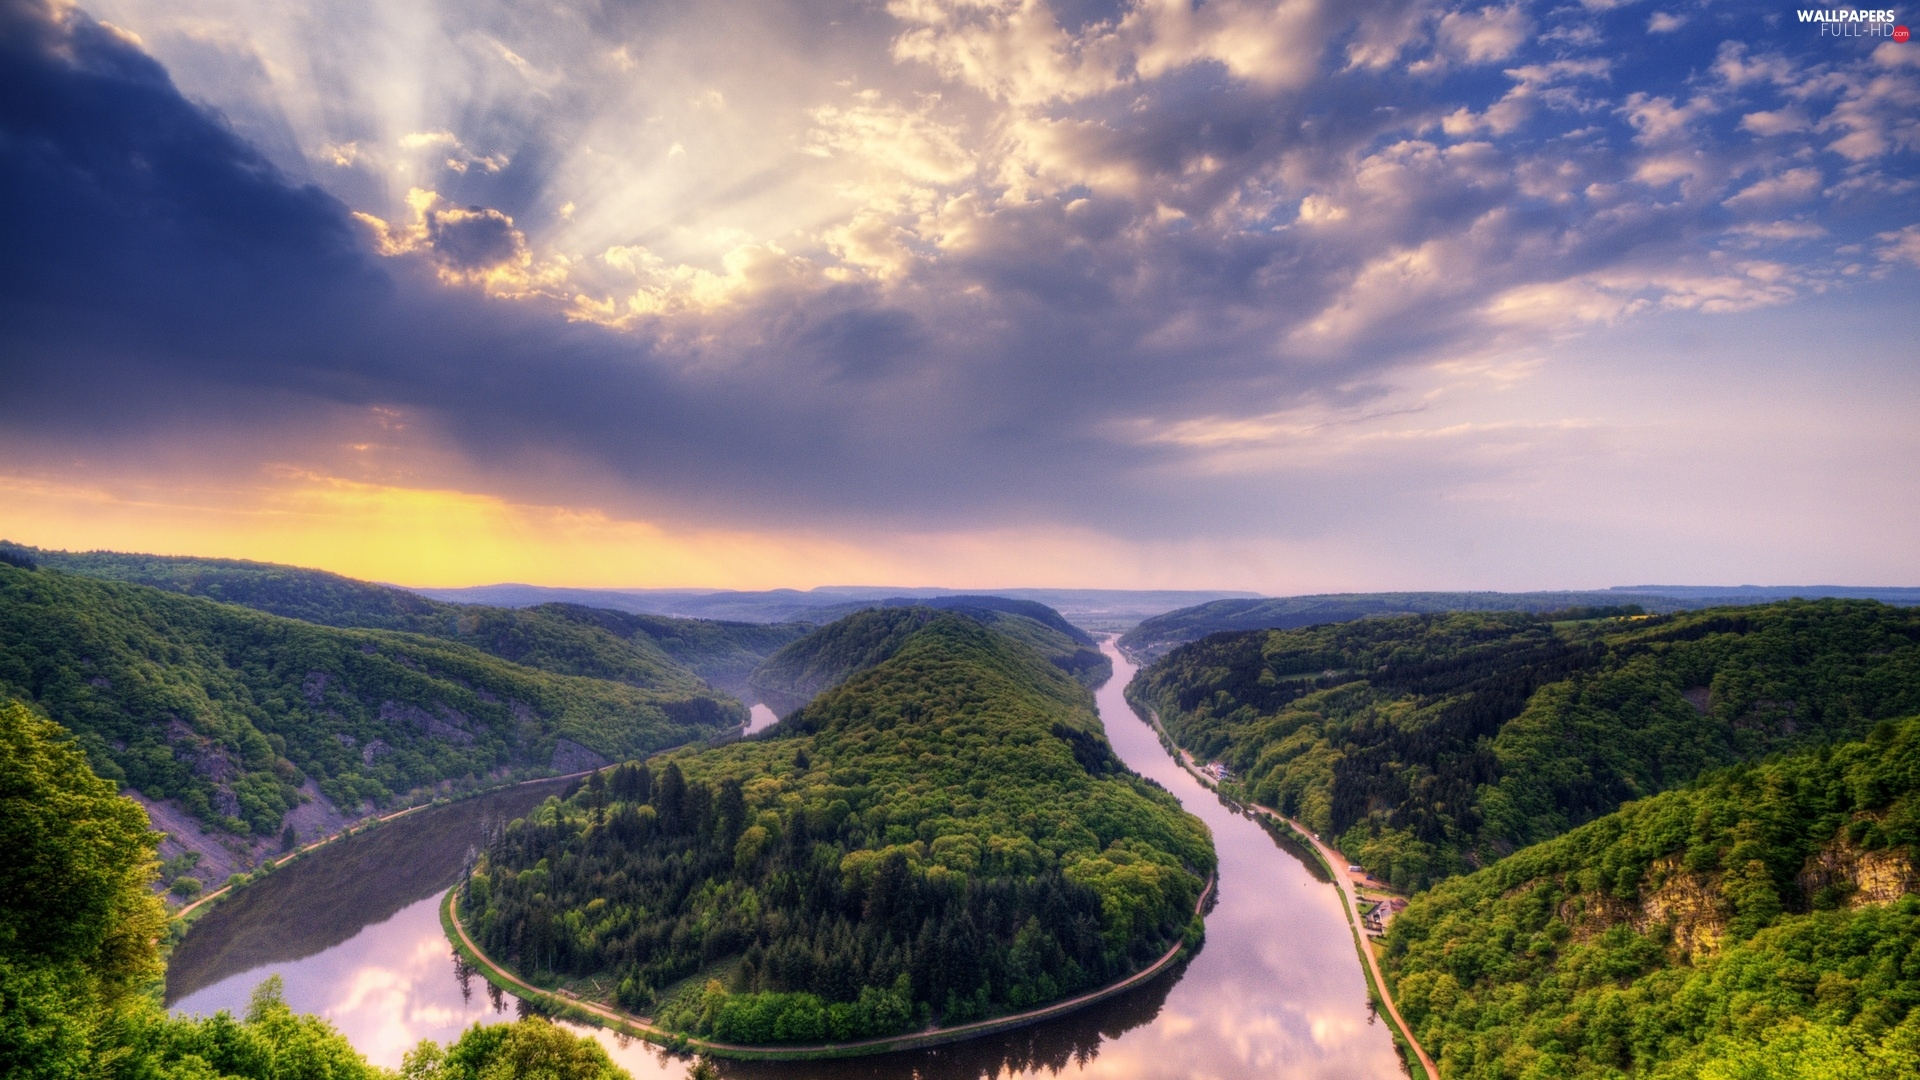 The Hills, trees, viewes, winding, clouds, River